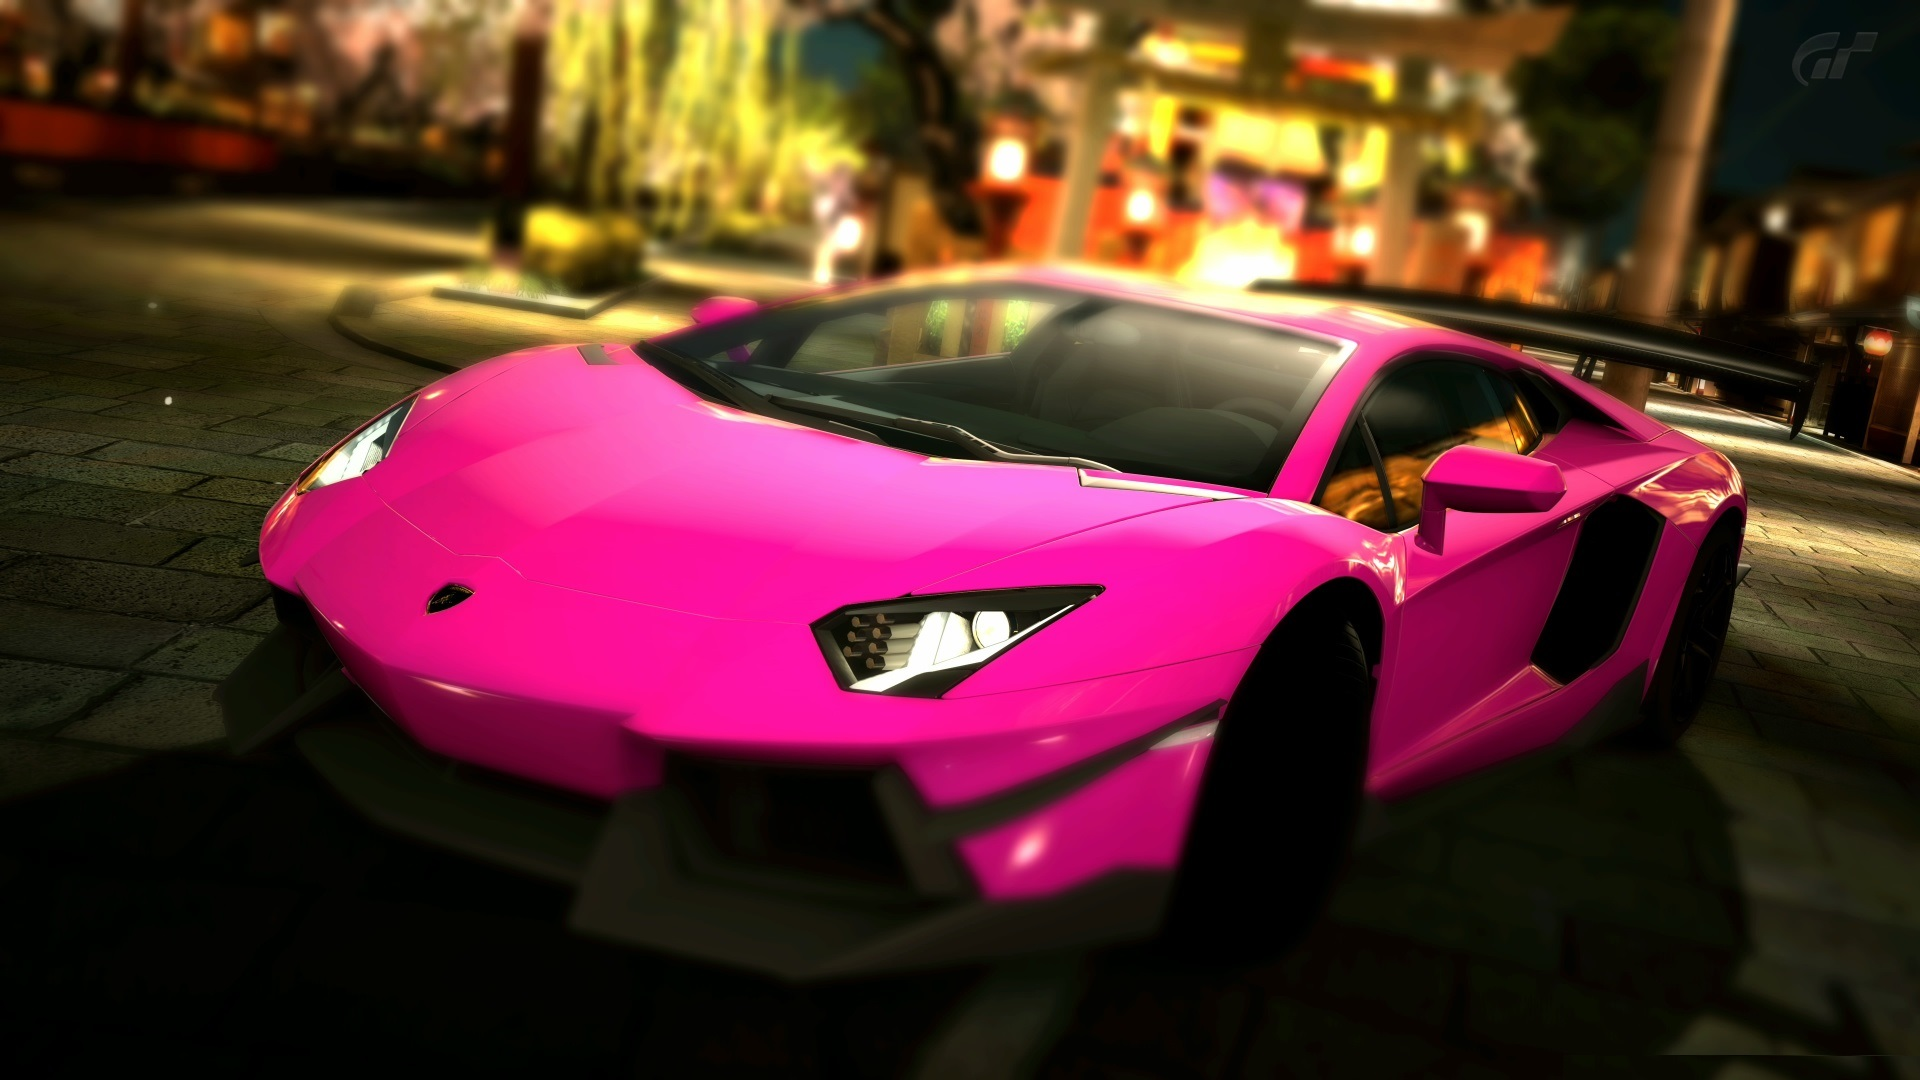 However, those wanting to buy a used car can benefit from doing s. Pink Lamborghini Aventador HD Wallpaper - 9to5 Car Wallpapers